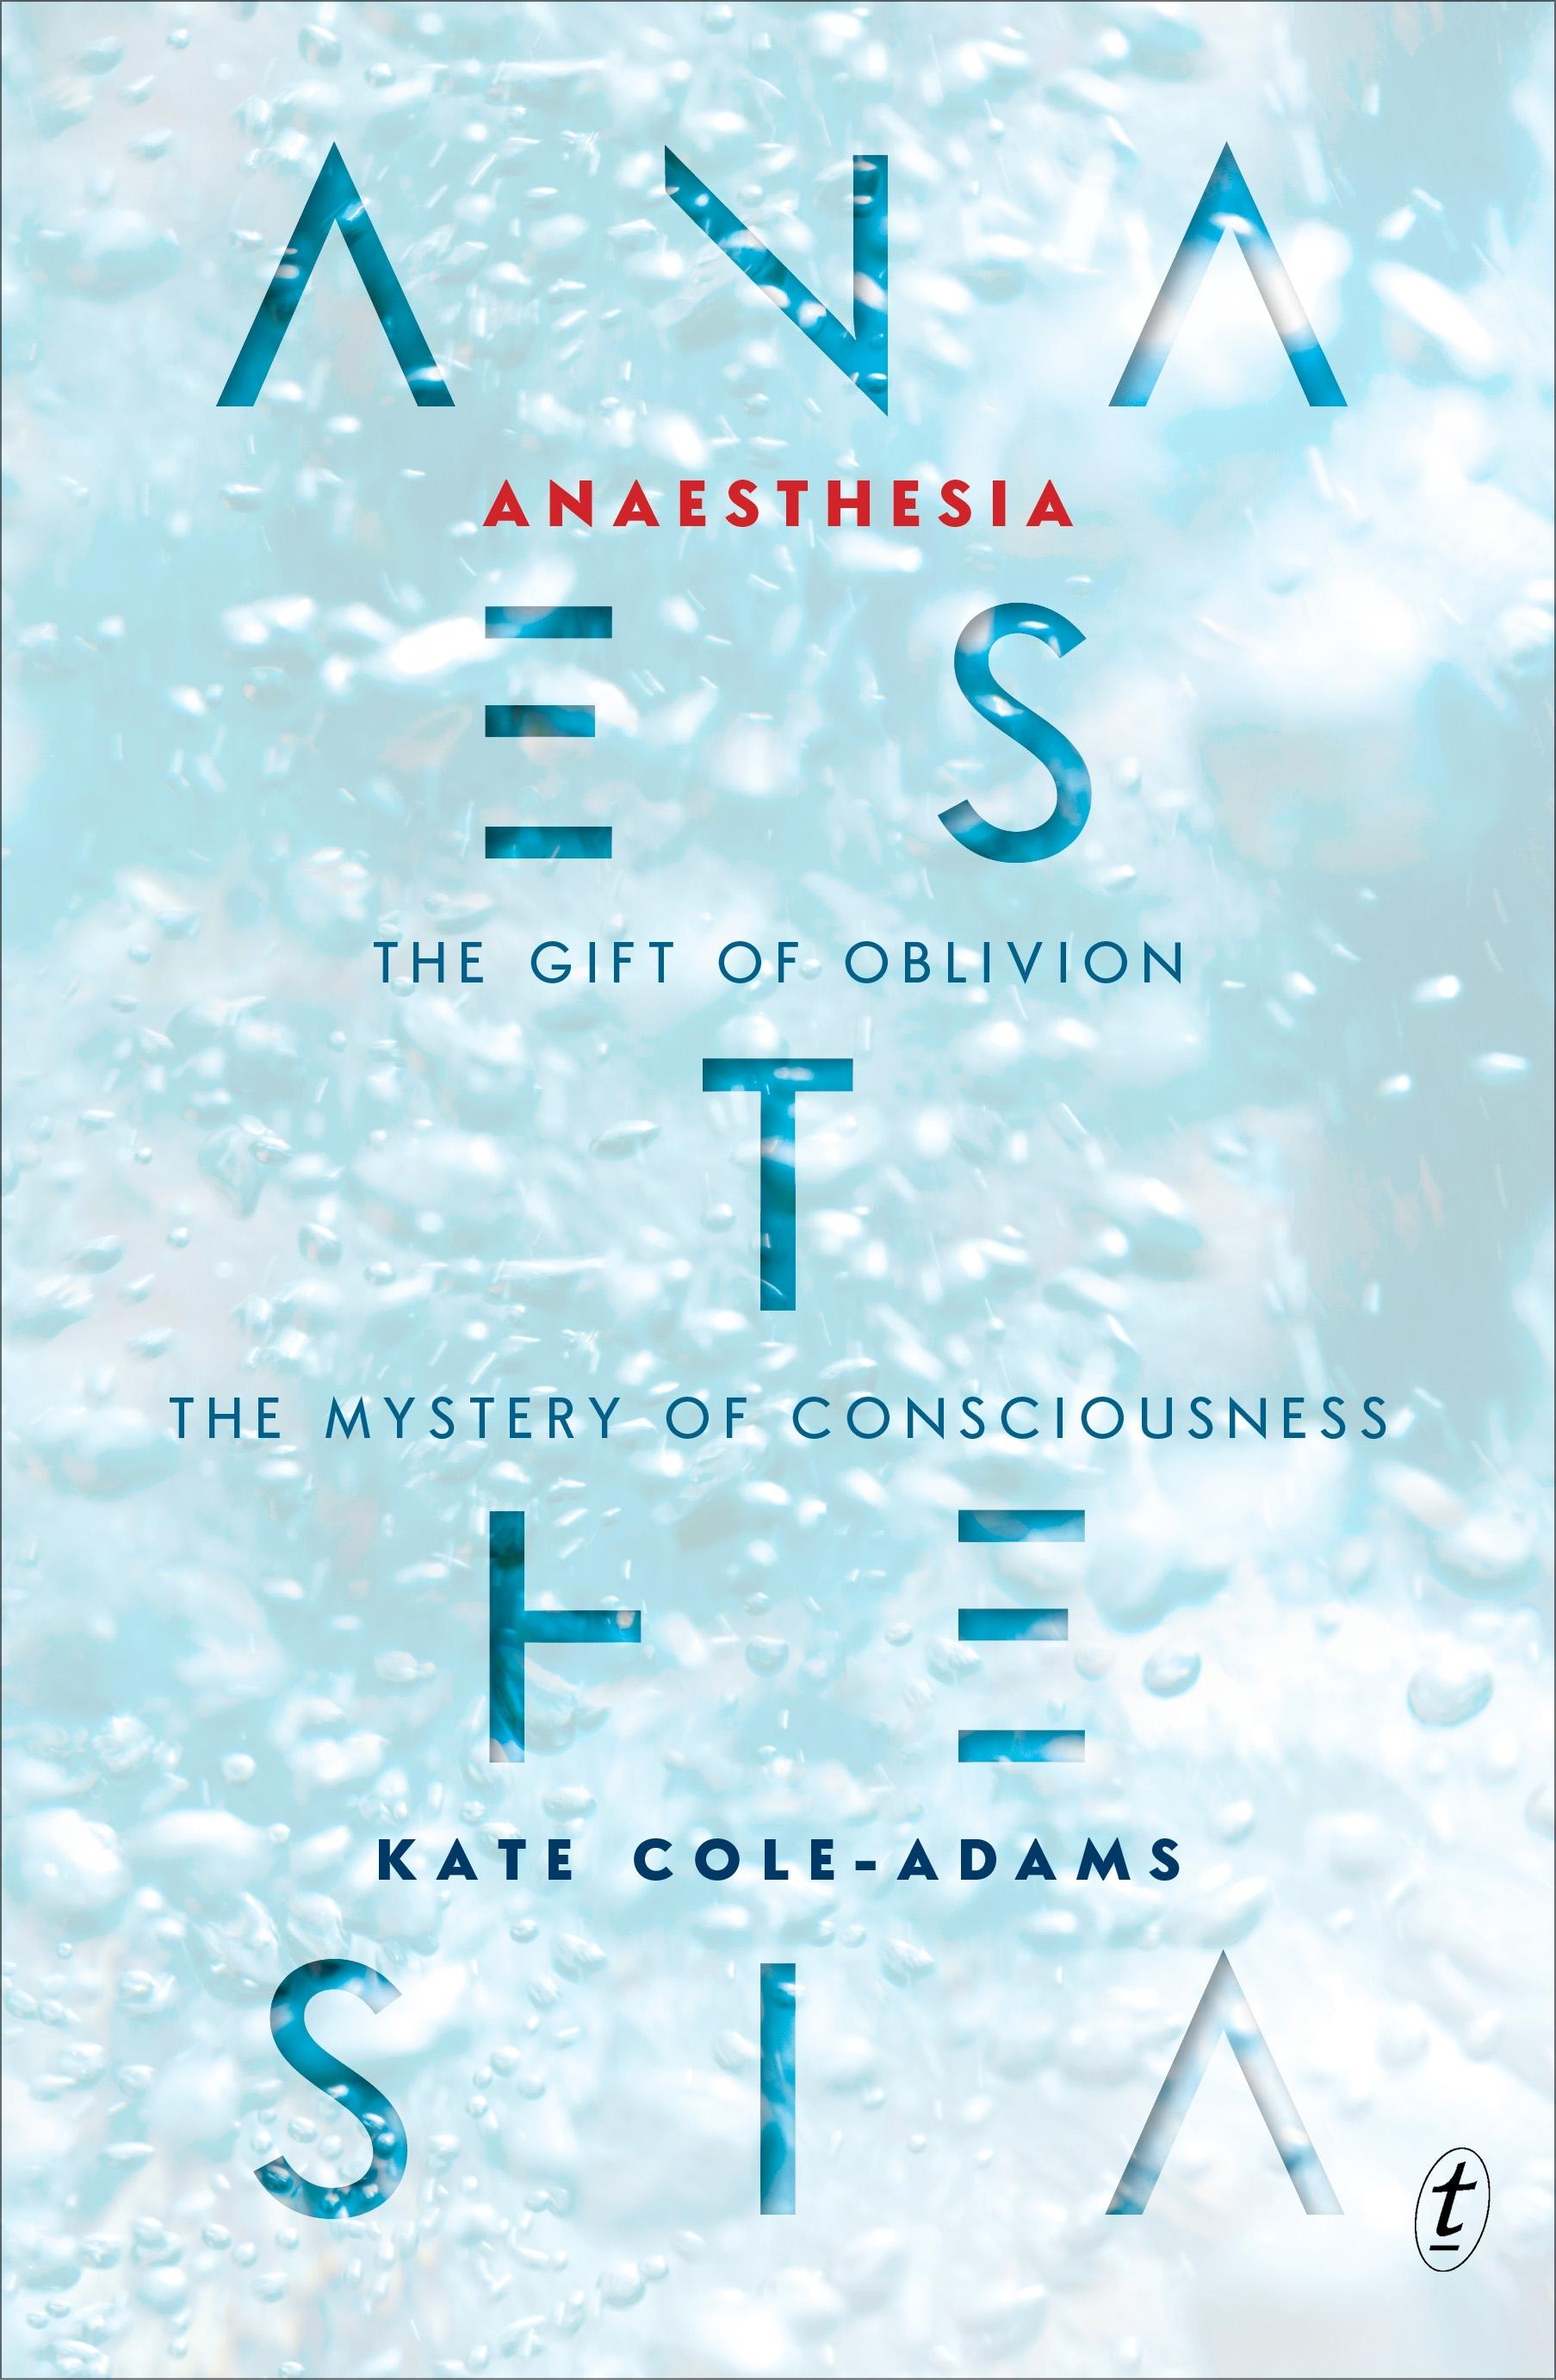 Anaesthesia: The Gift of Oblivion